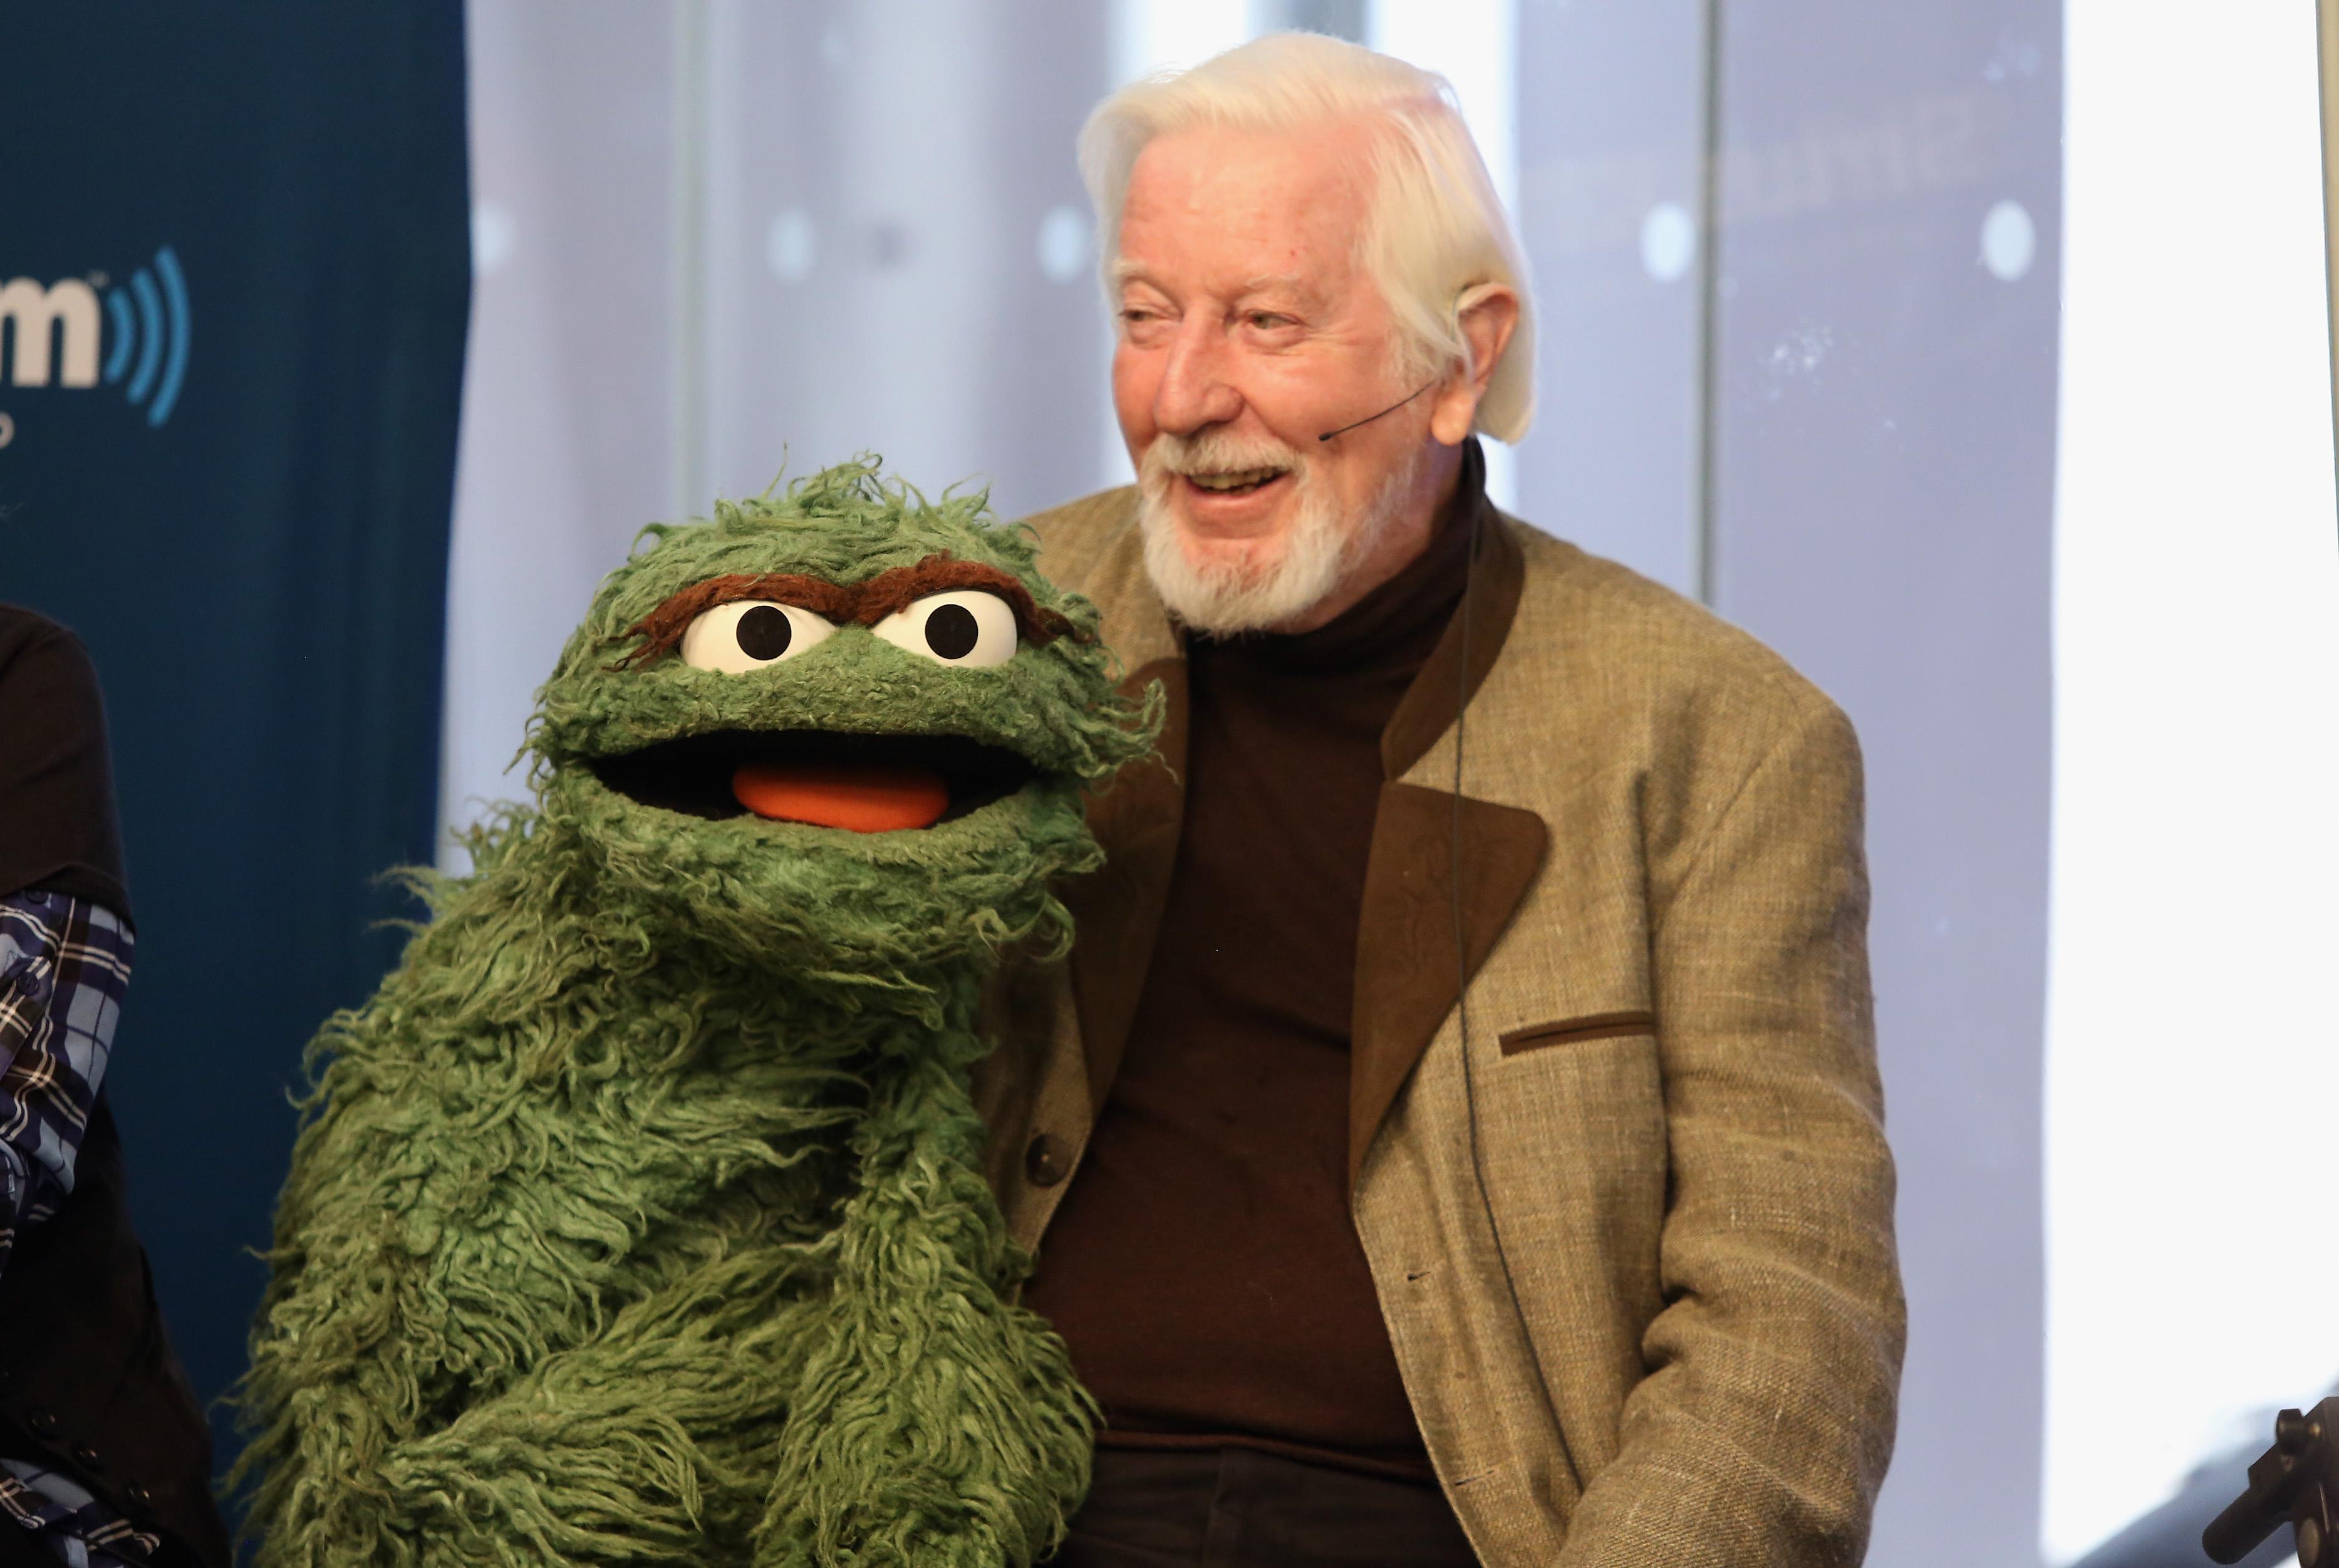 Caroll Spinney, wearing a light brown suit jacket, holds the Oscar the Grouch puppet.